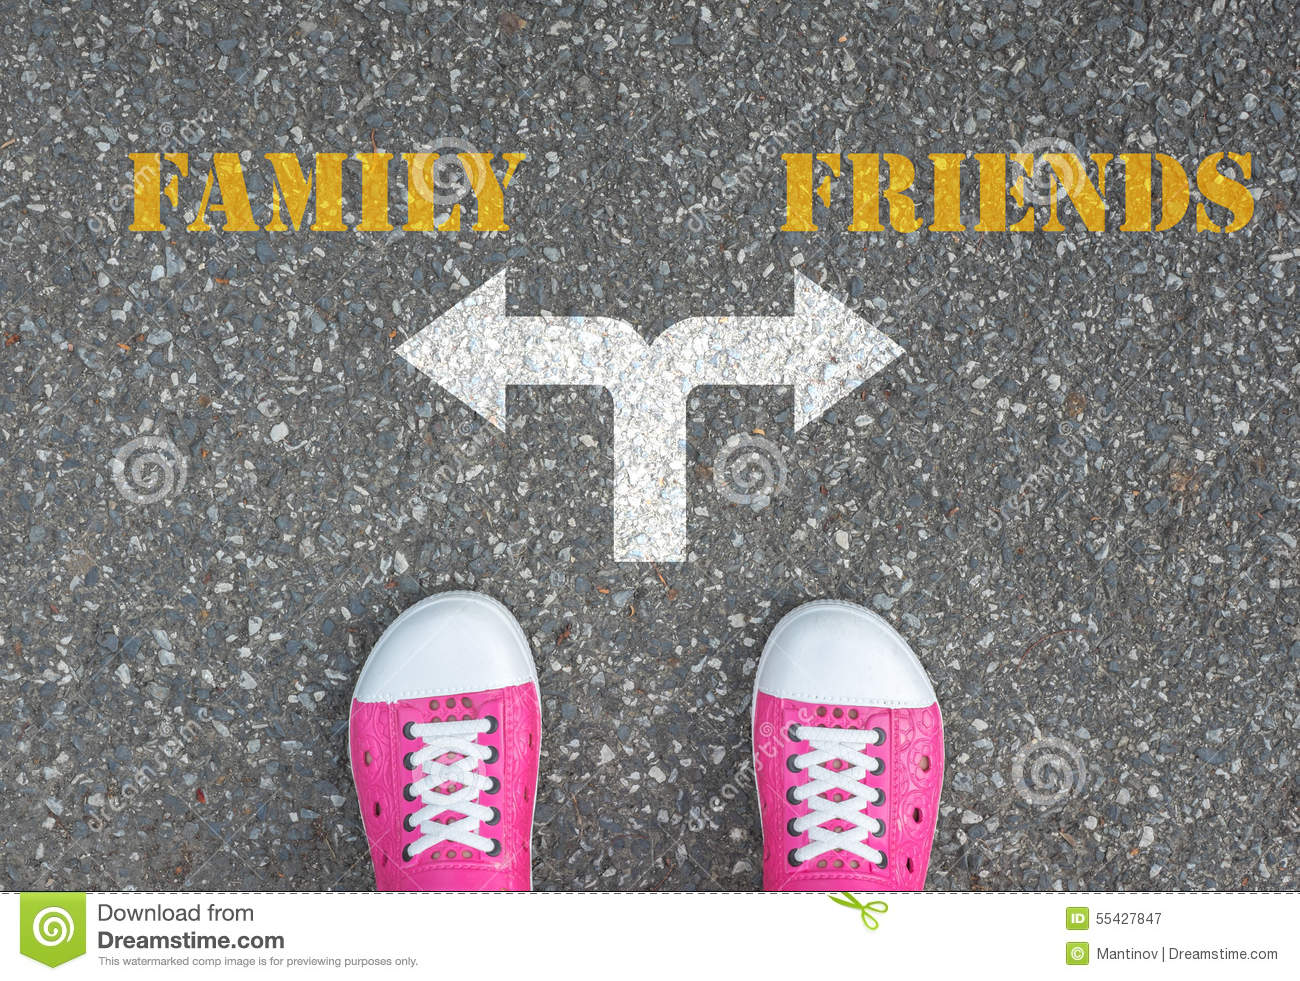 80c30367a4361e Decision To Make At The Crossroad - Family Or Friends Stock Image ...